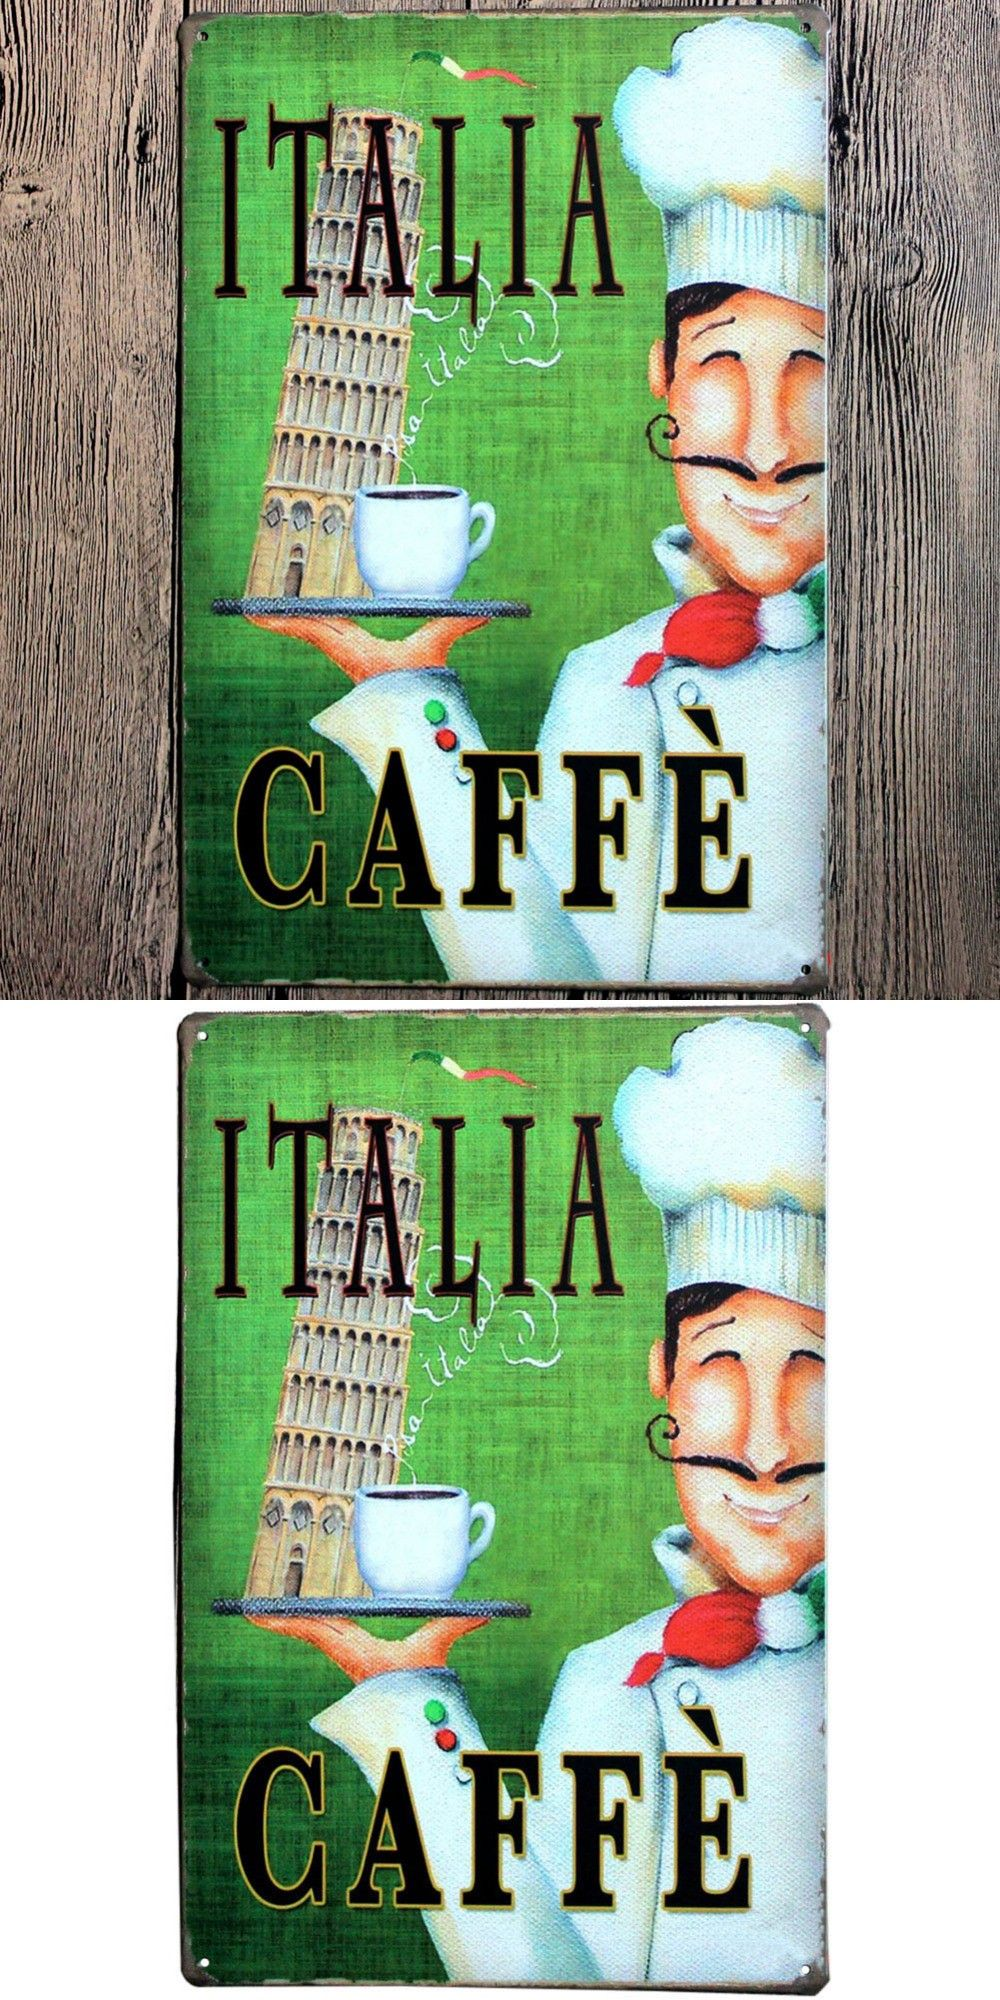 Italia caffe wall art painting craft metal poster tin sign wall